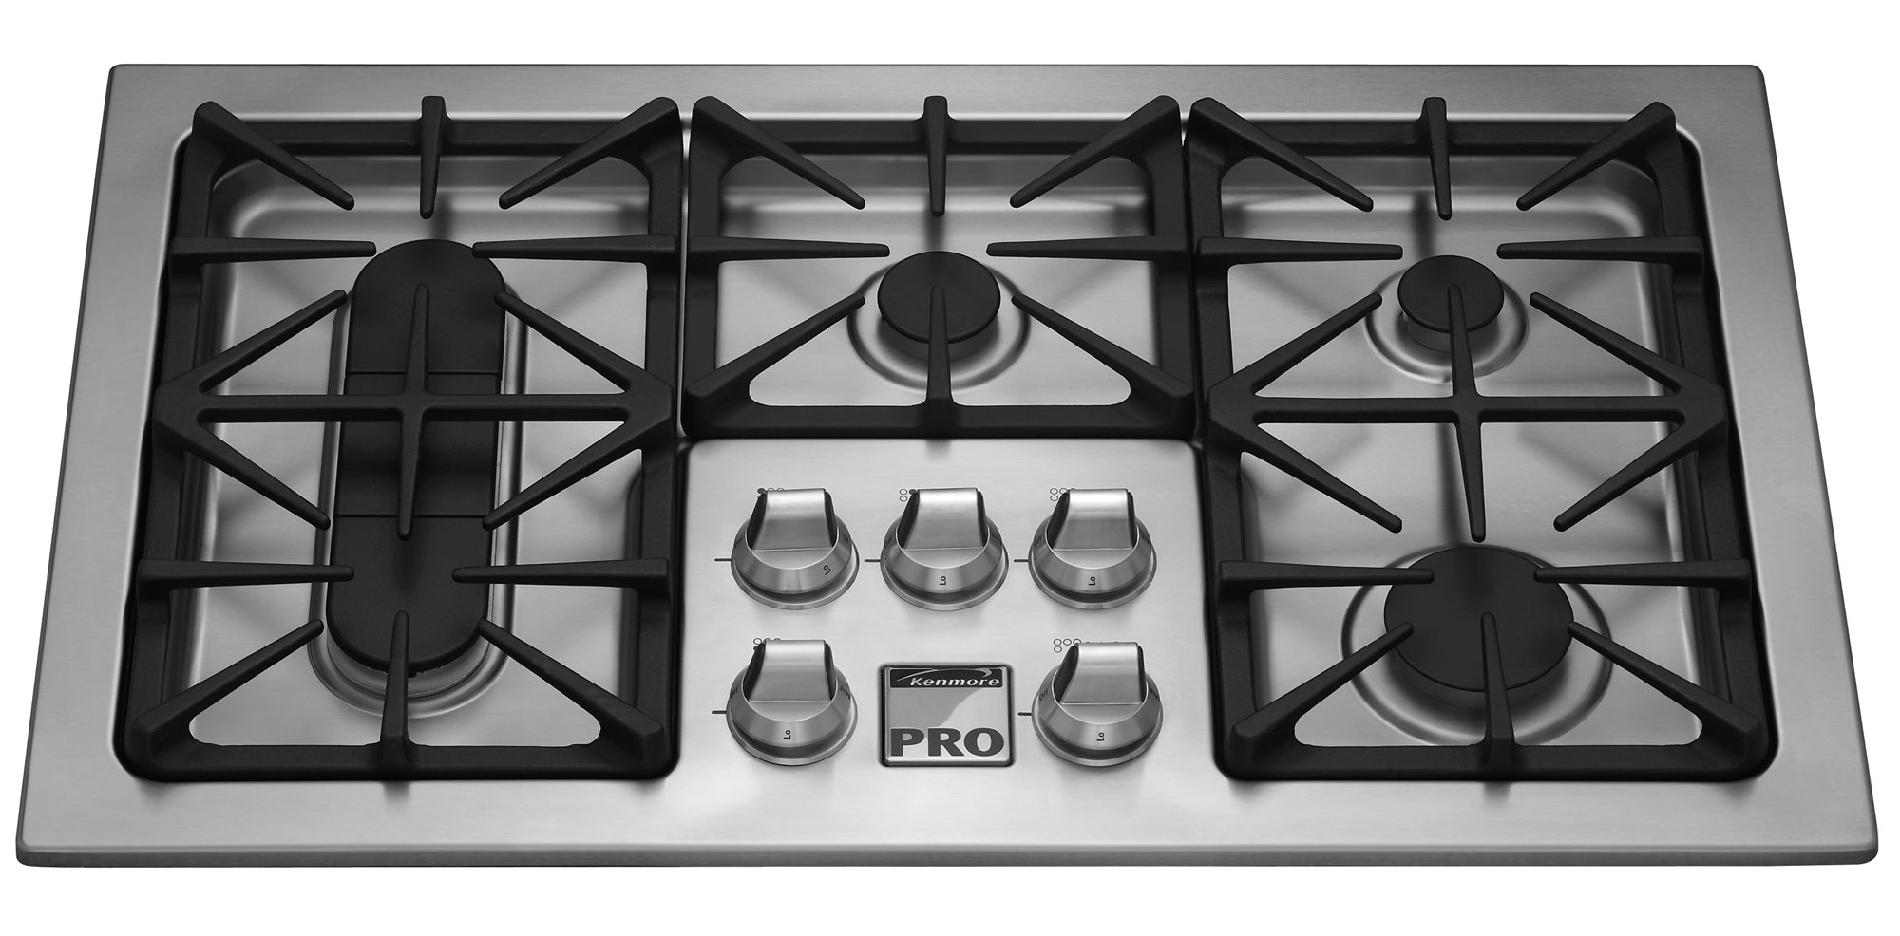 "Kenmore Pro 36"" Gas Drop In Cooktop - Stainless Steel"